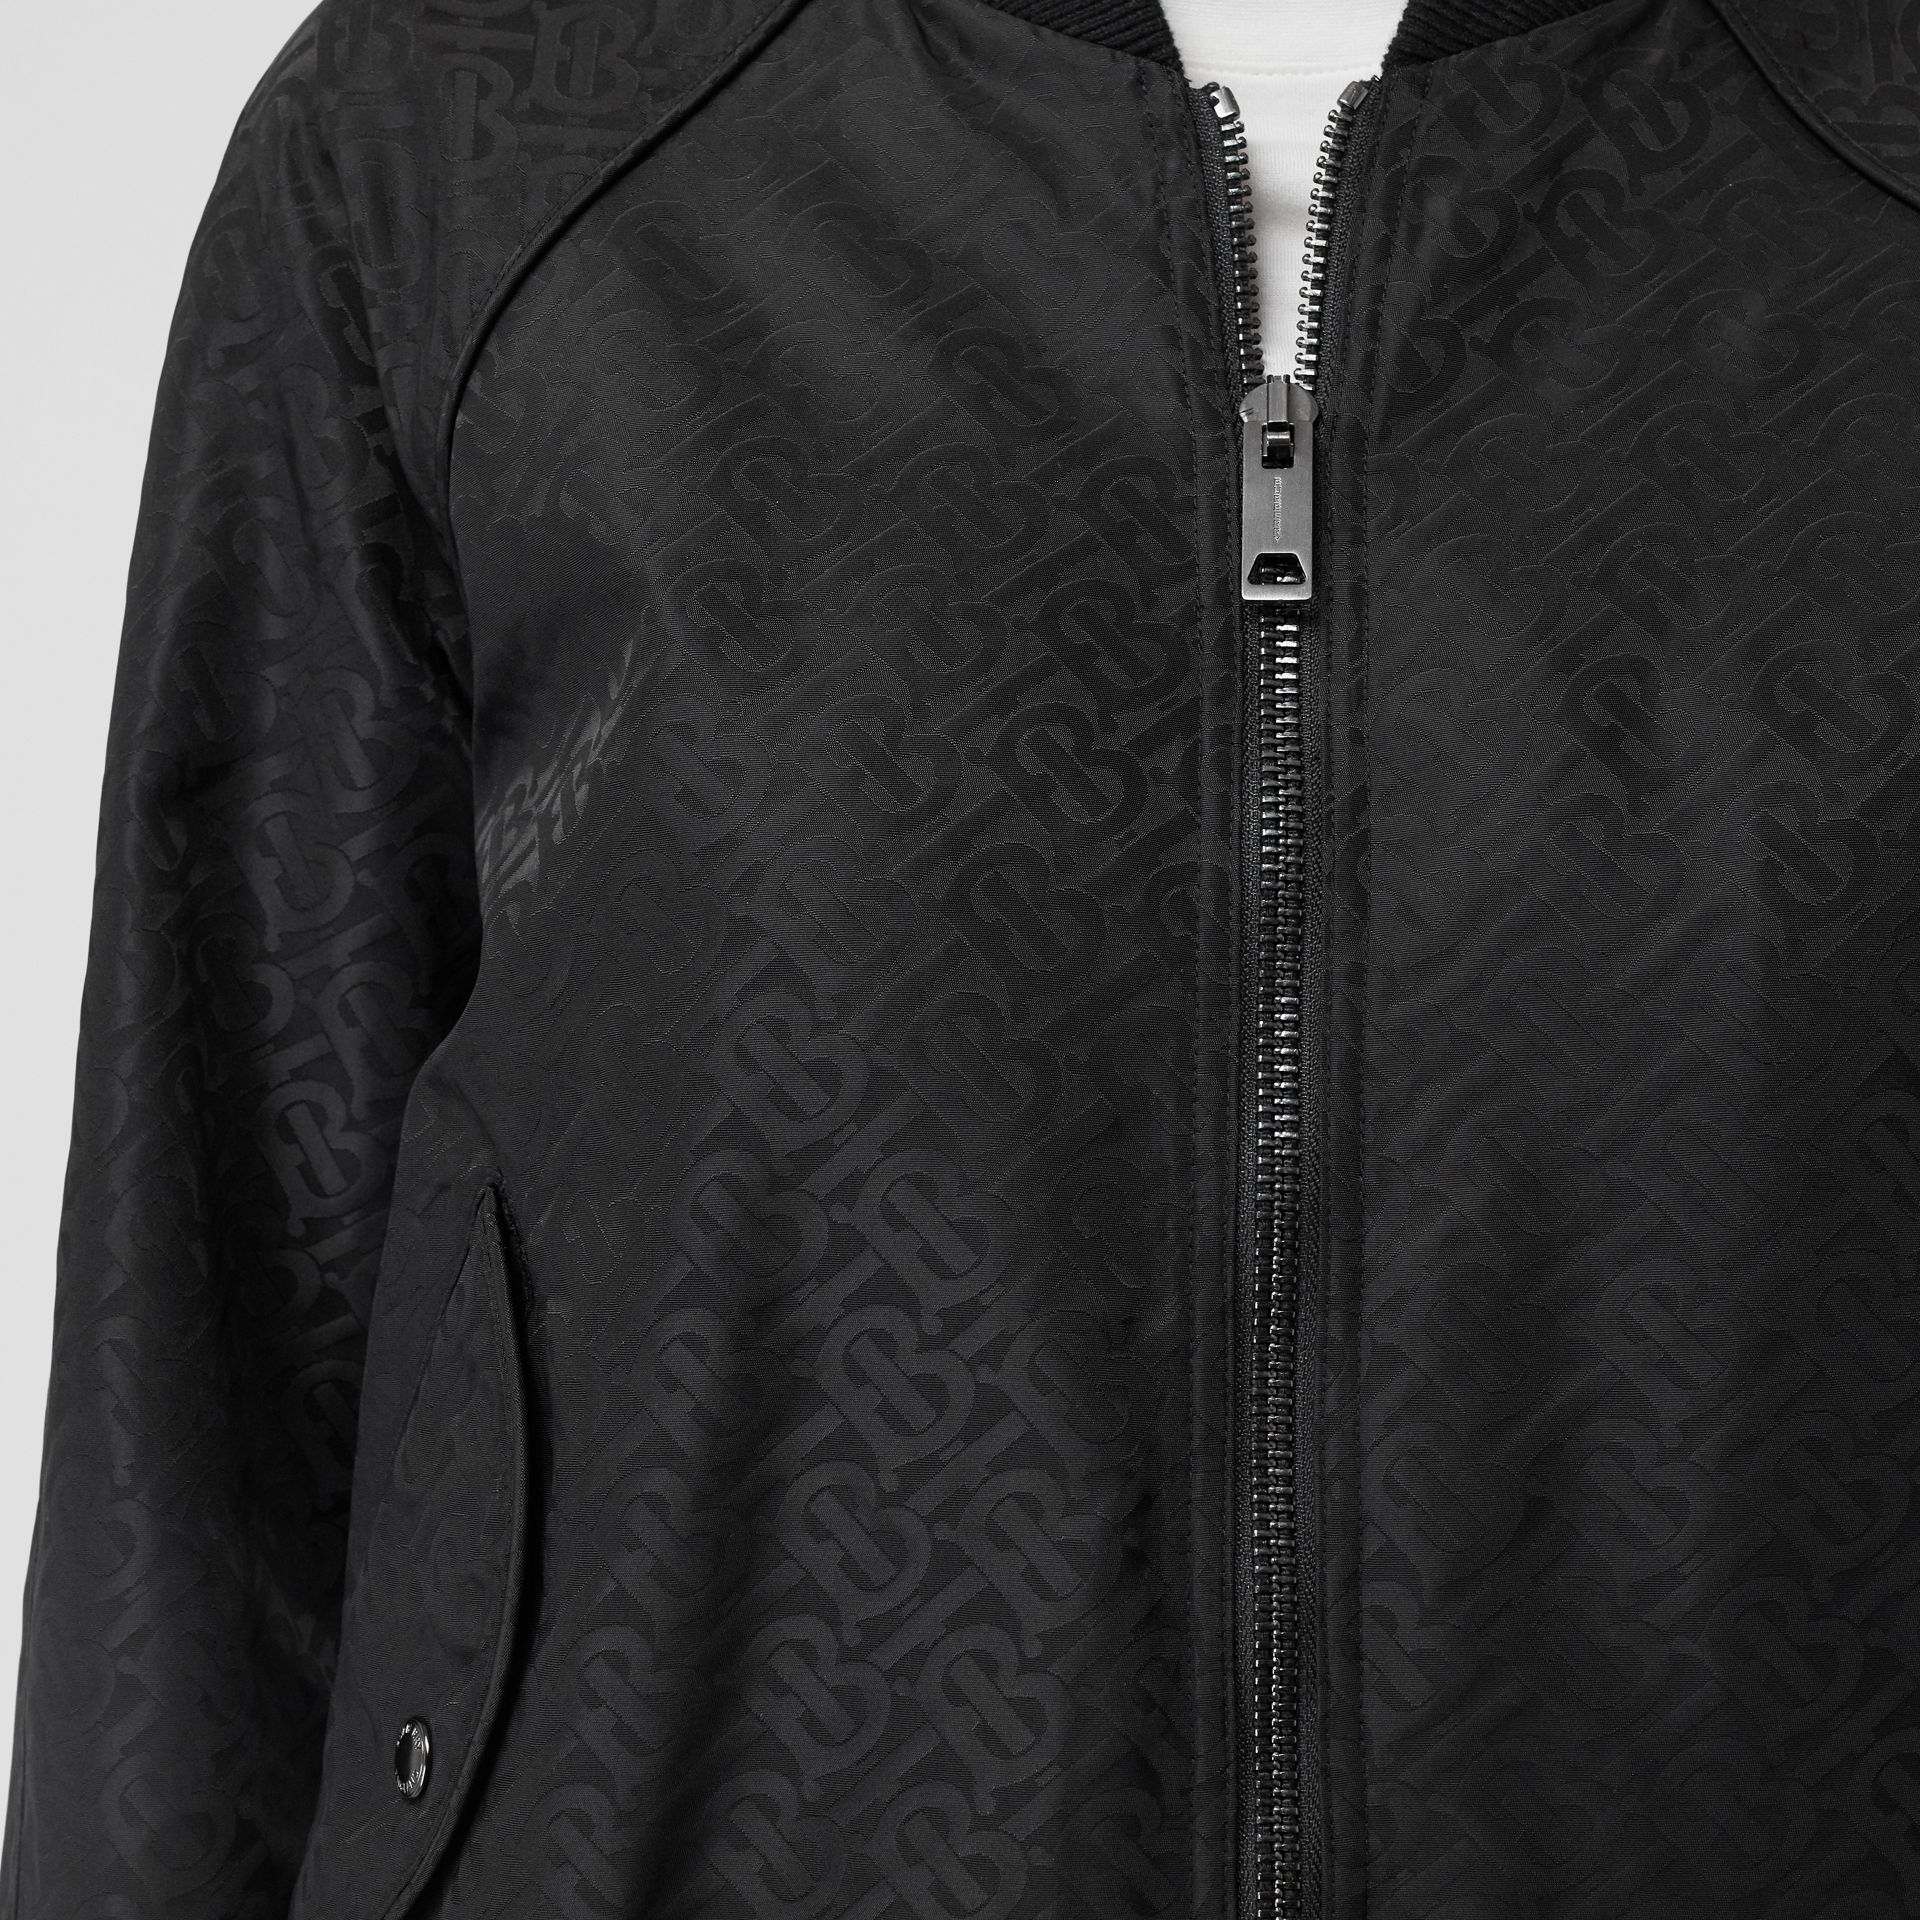 Monogram ECONYL® Jacquard Bomber Jacket in Black - Women | Burberry - gallery image 4